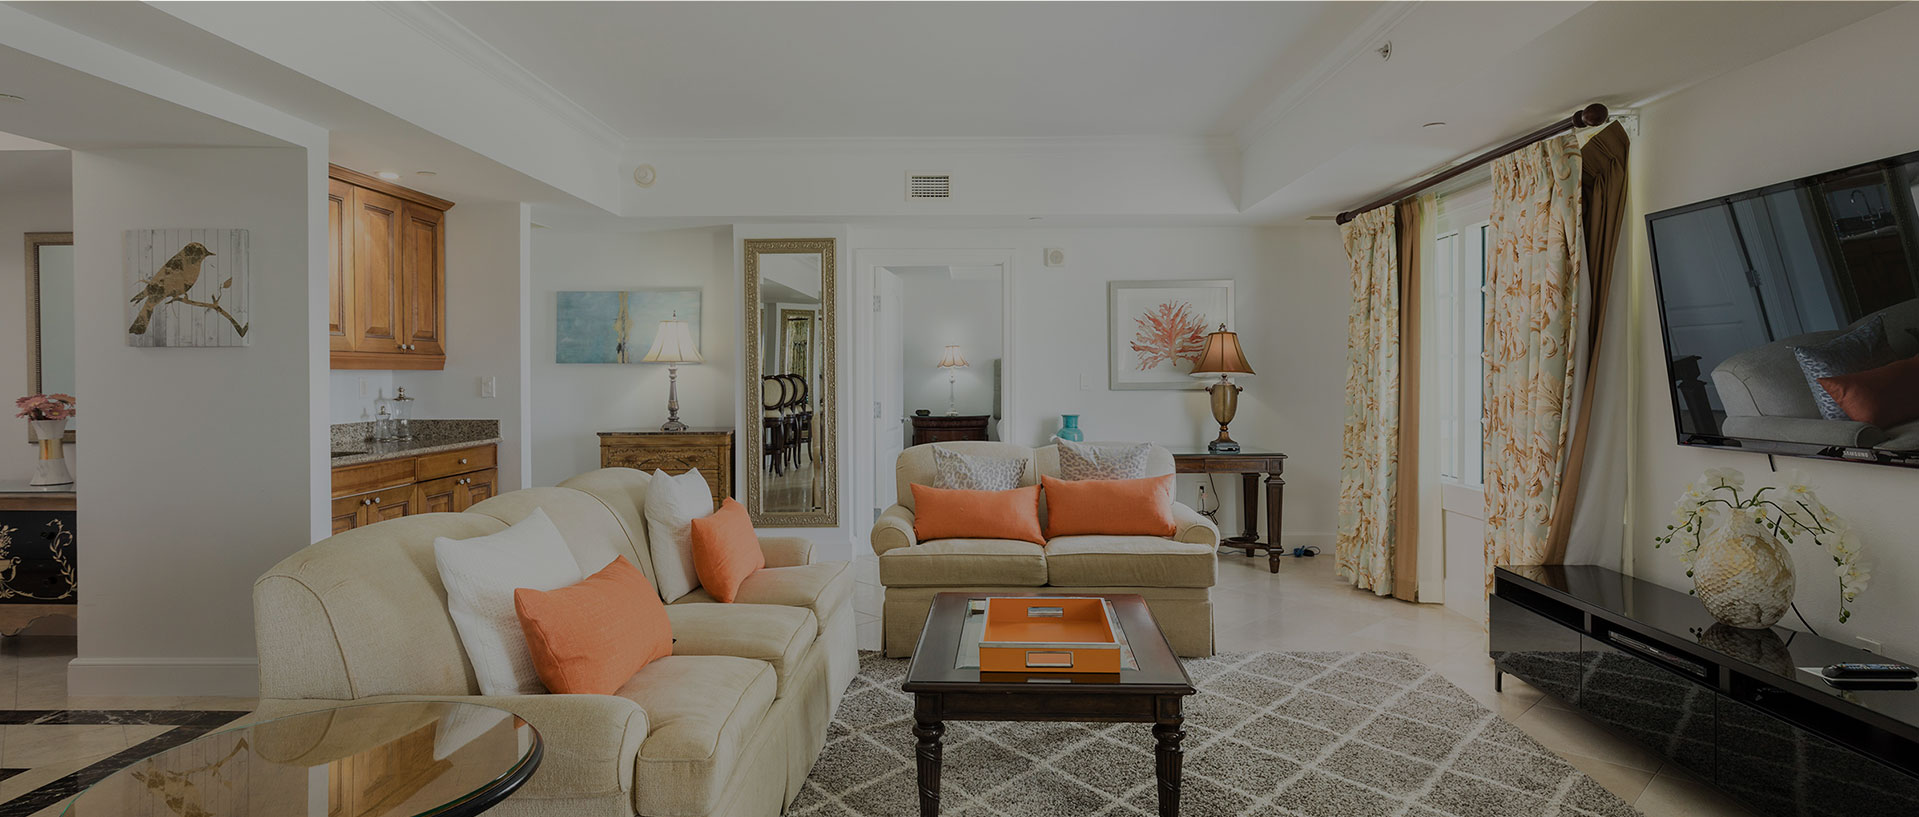 living room with orange accents dark overlay